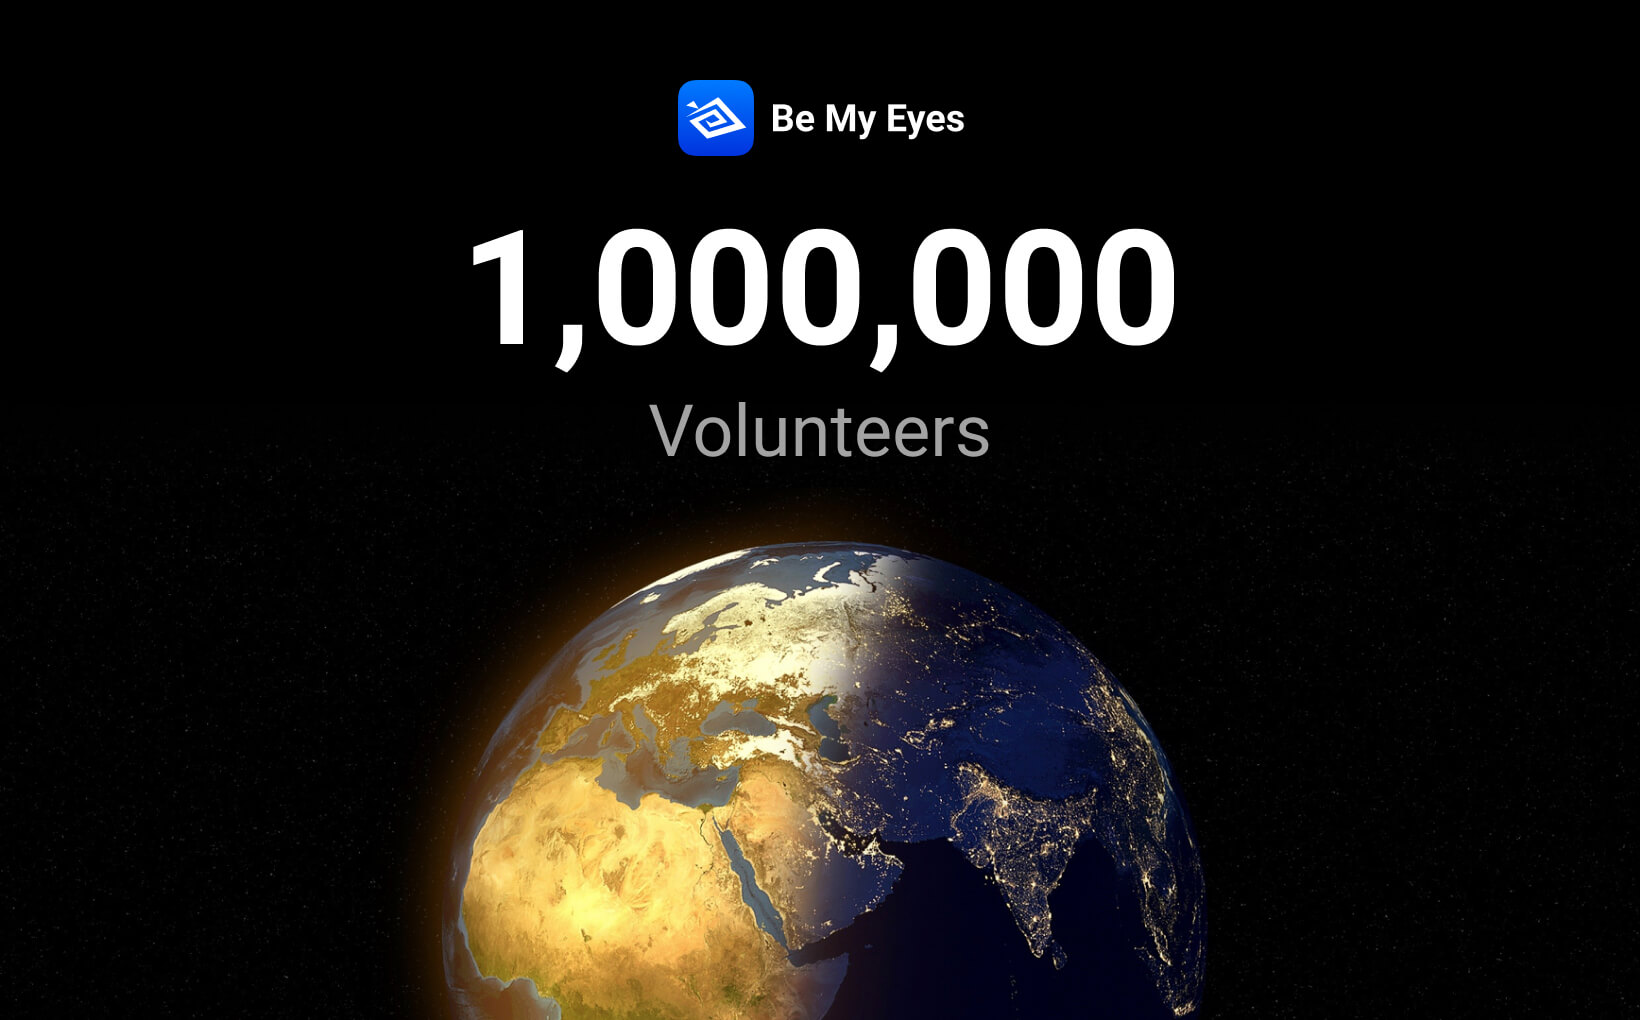 A half-lit globe is pictured before a dark background below the Be My Eyes logo showcasing the exicting new number of volunteers - one million!